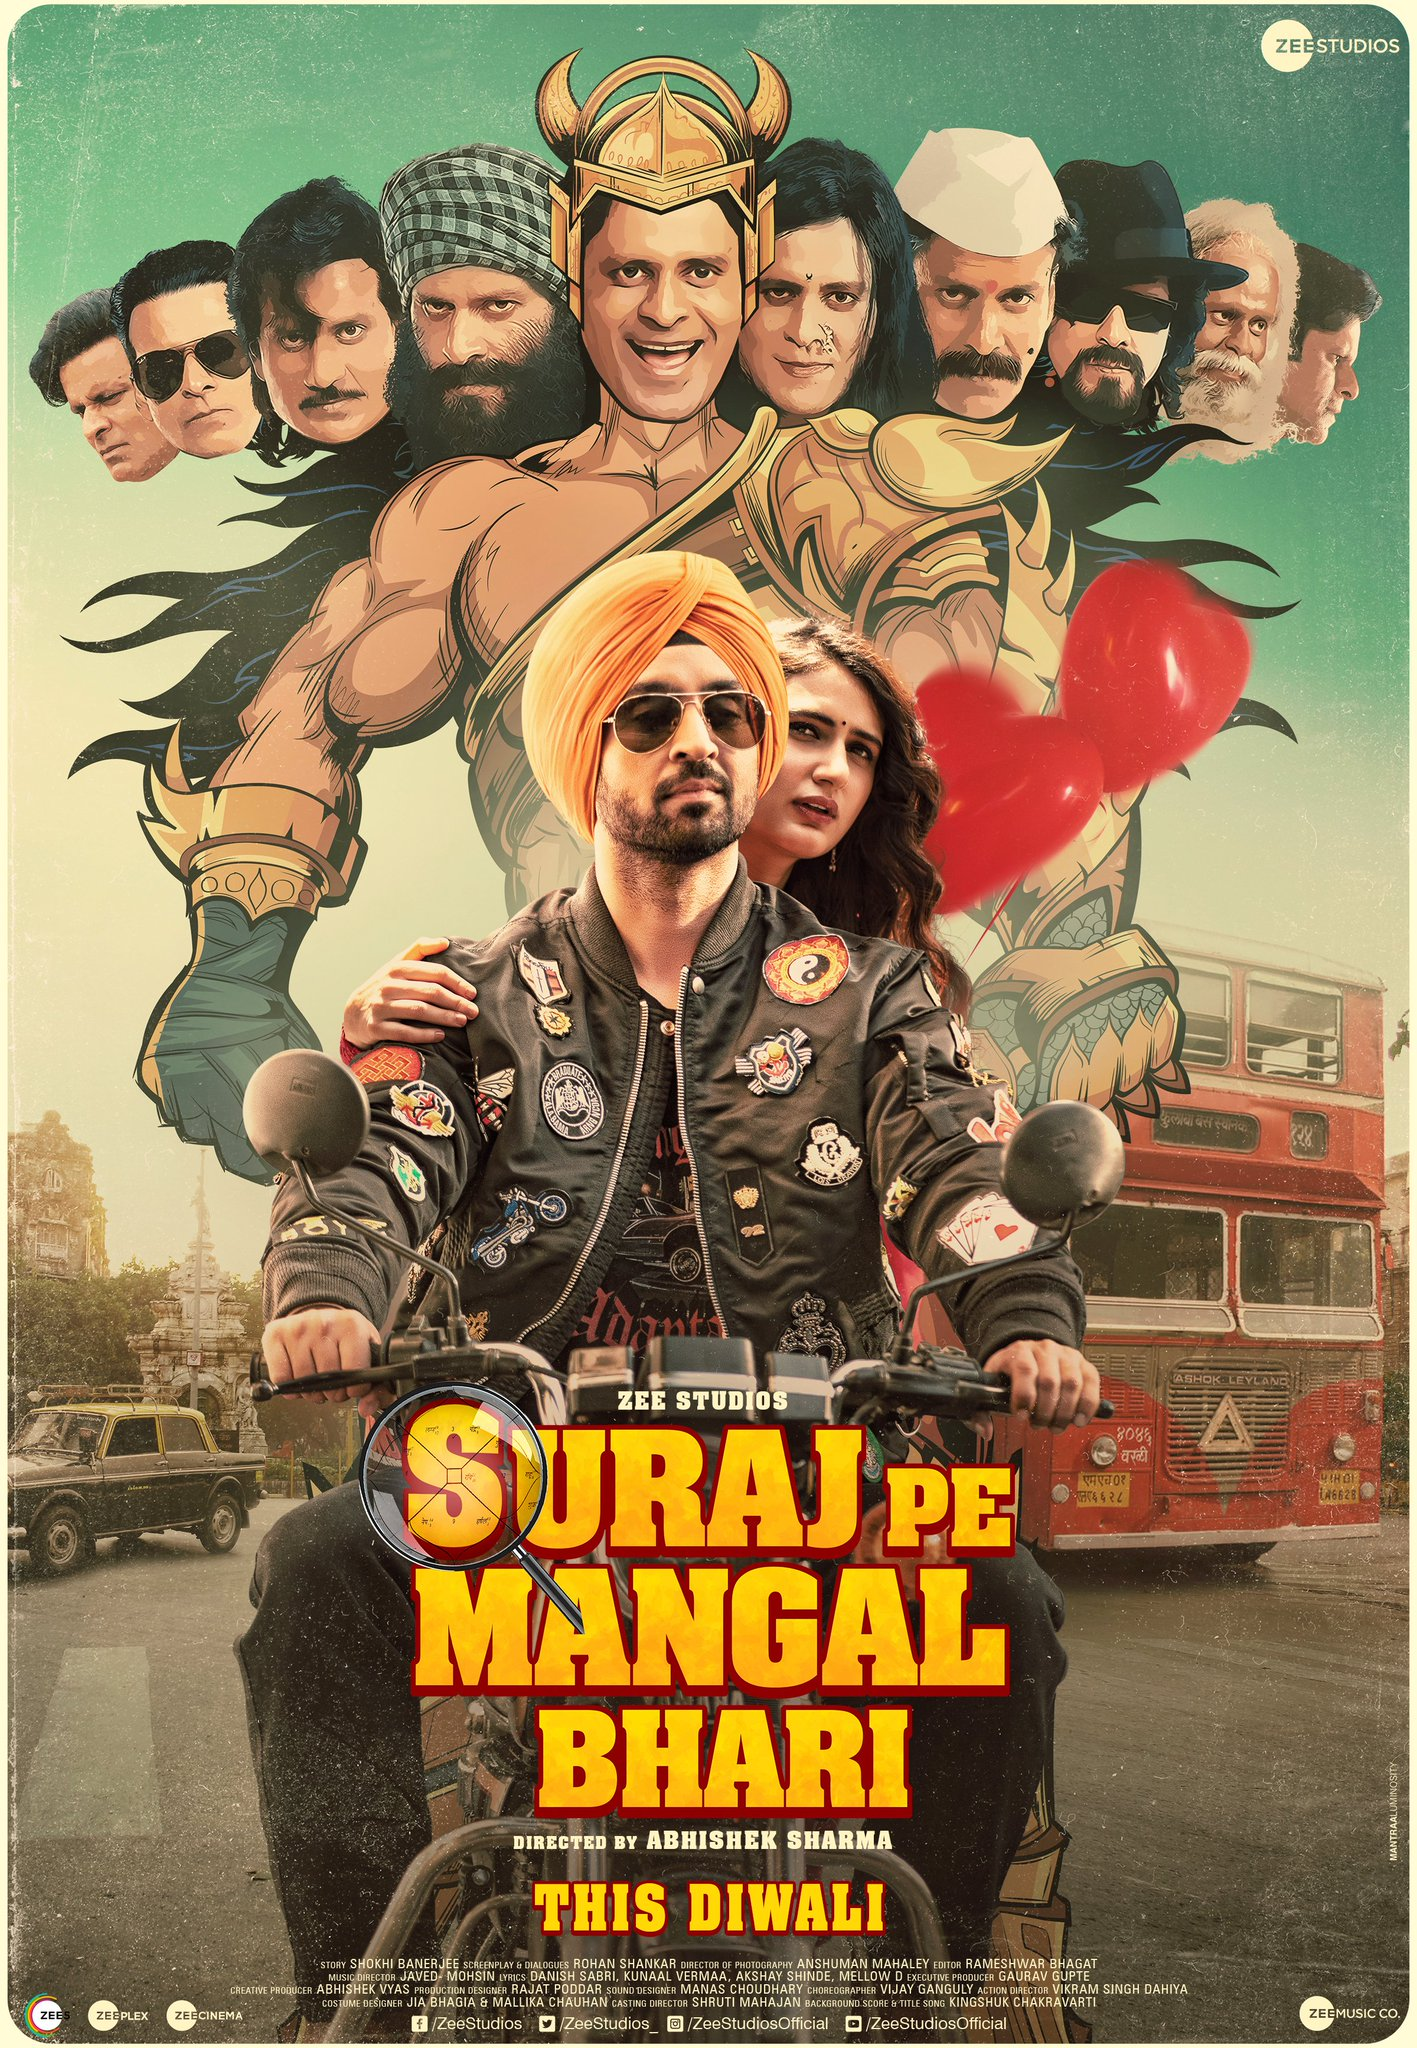 Suraj Pe Mangal Bhari 2020 Hindi 720p Pre-DVDRip 1GB Free Download